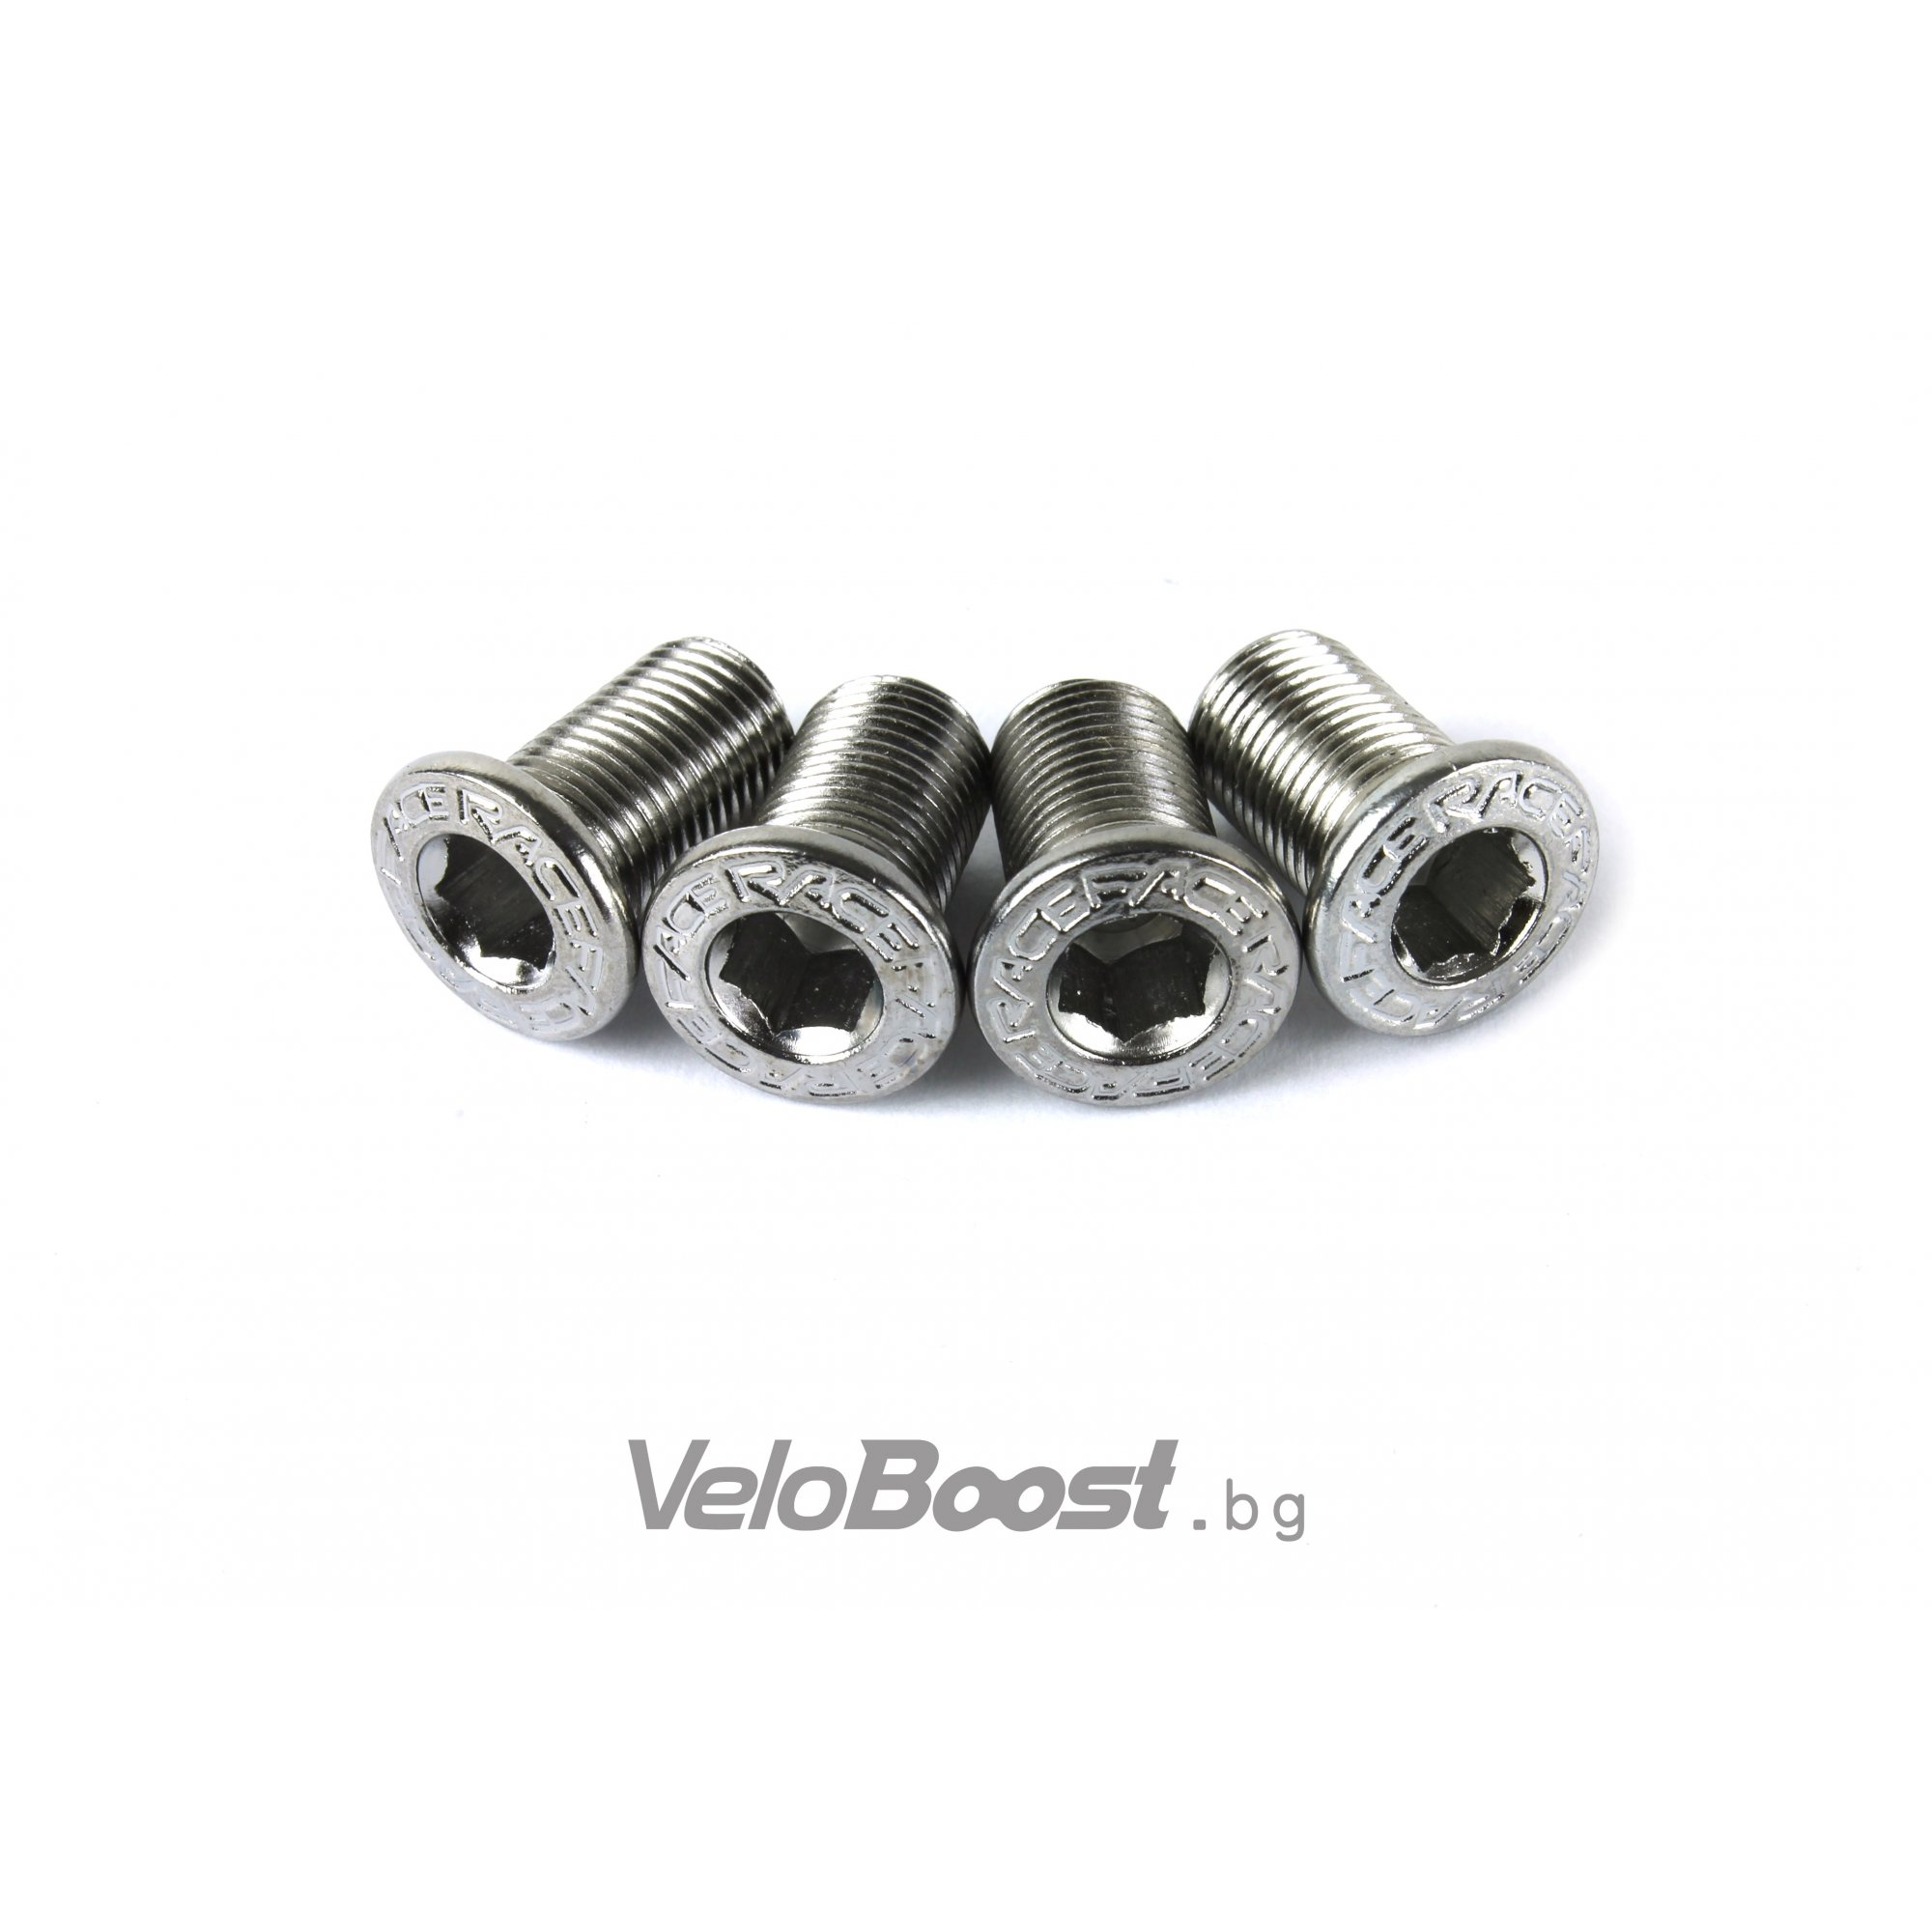 дълги болтове за плоча RaceFace 13mm Silver (71-04074)